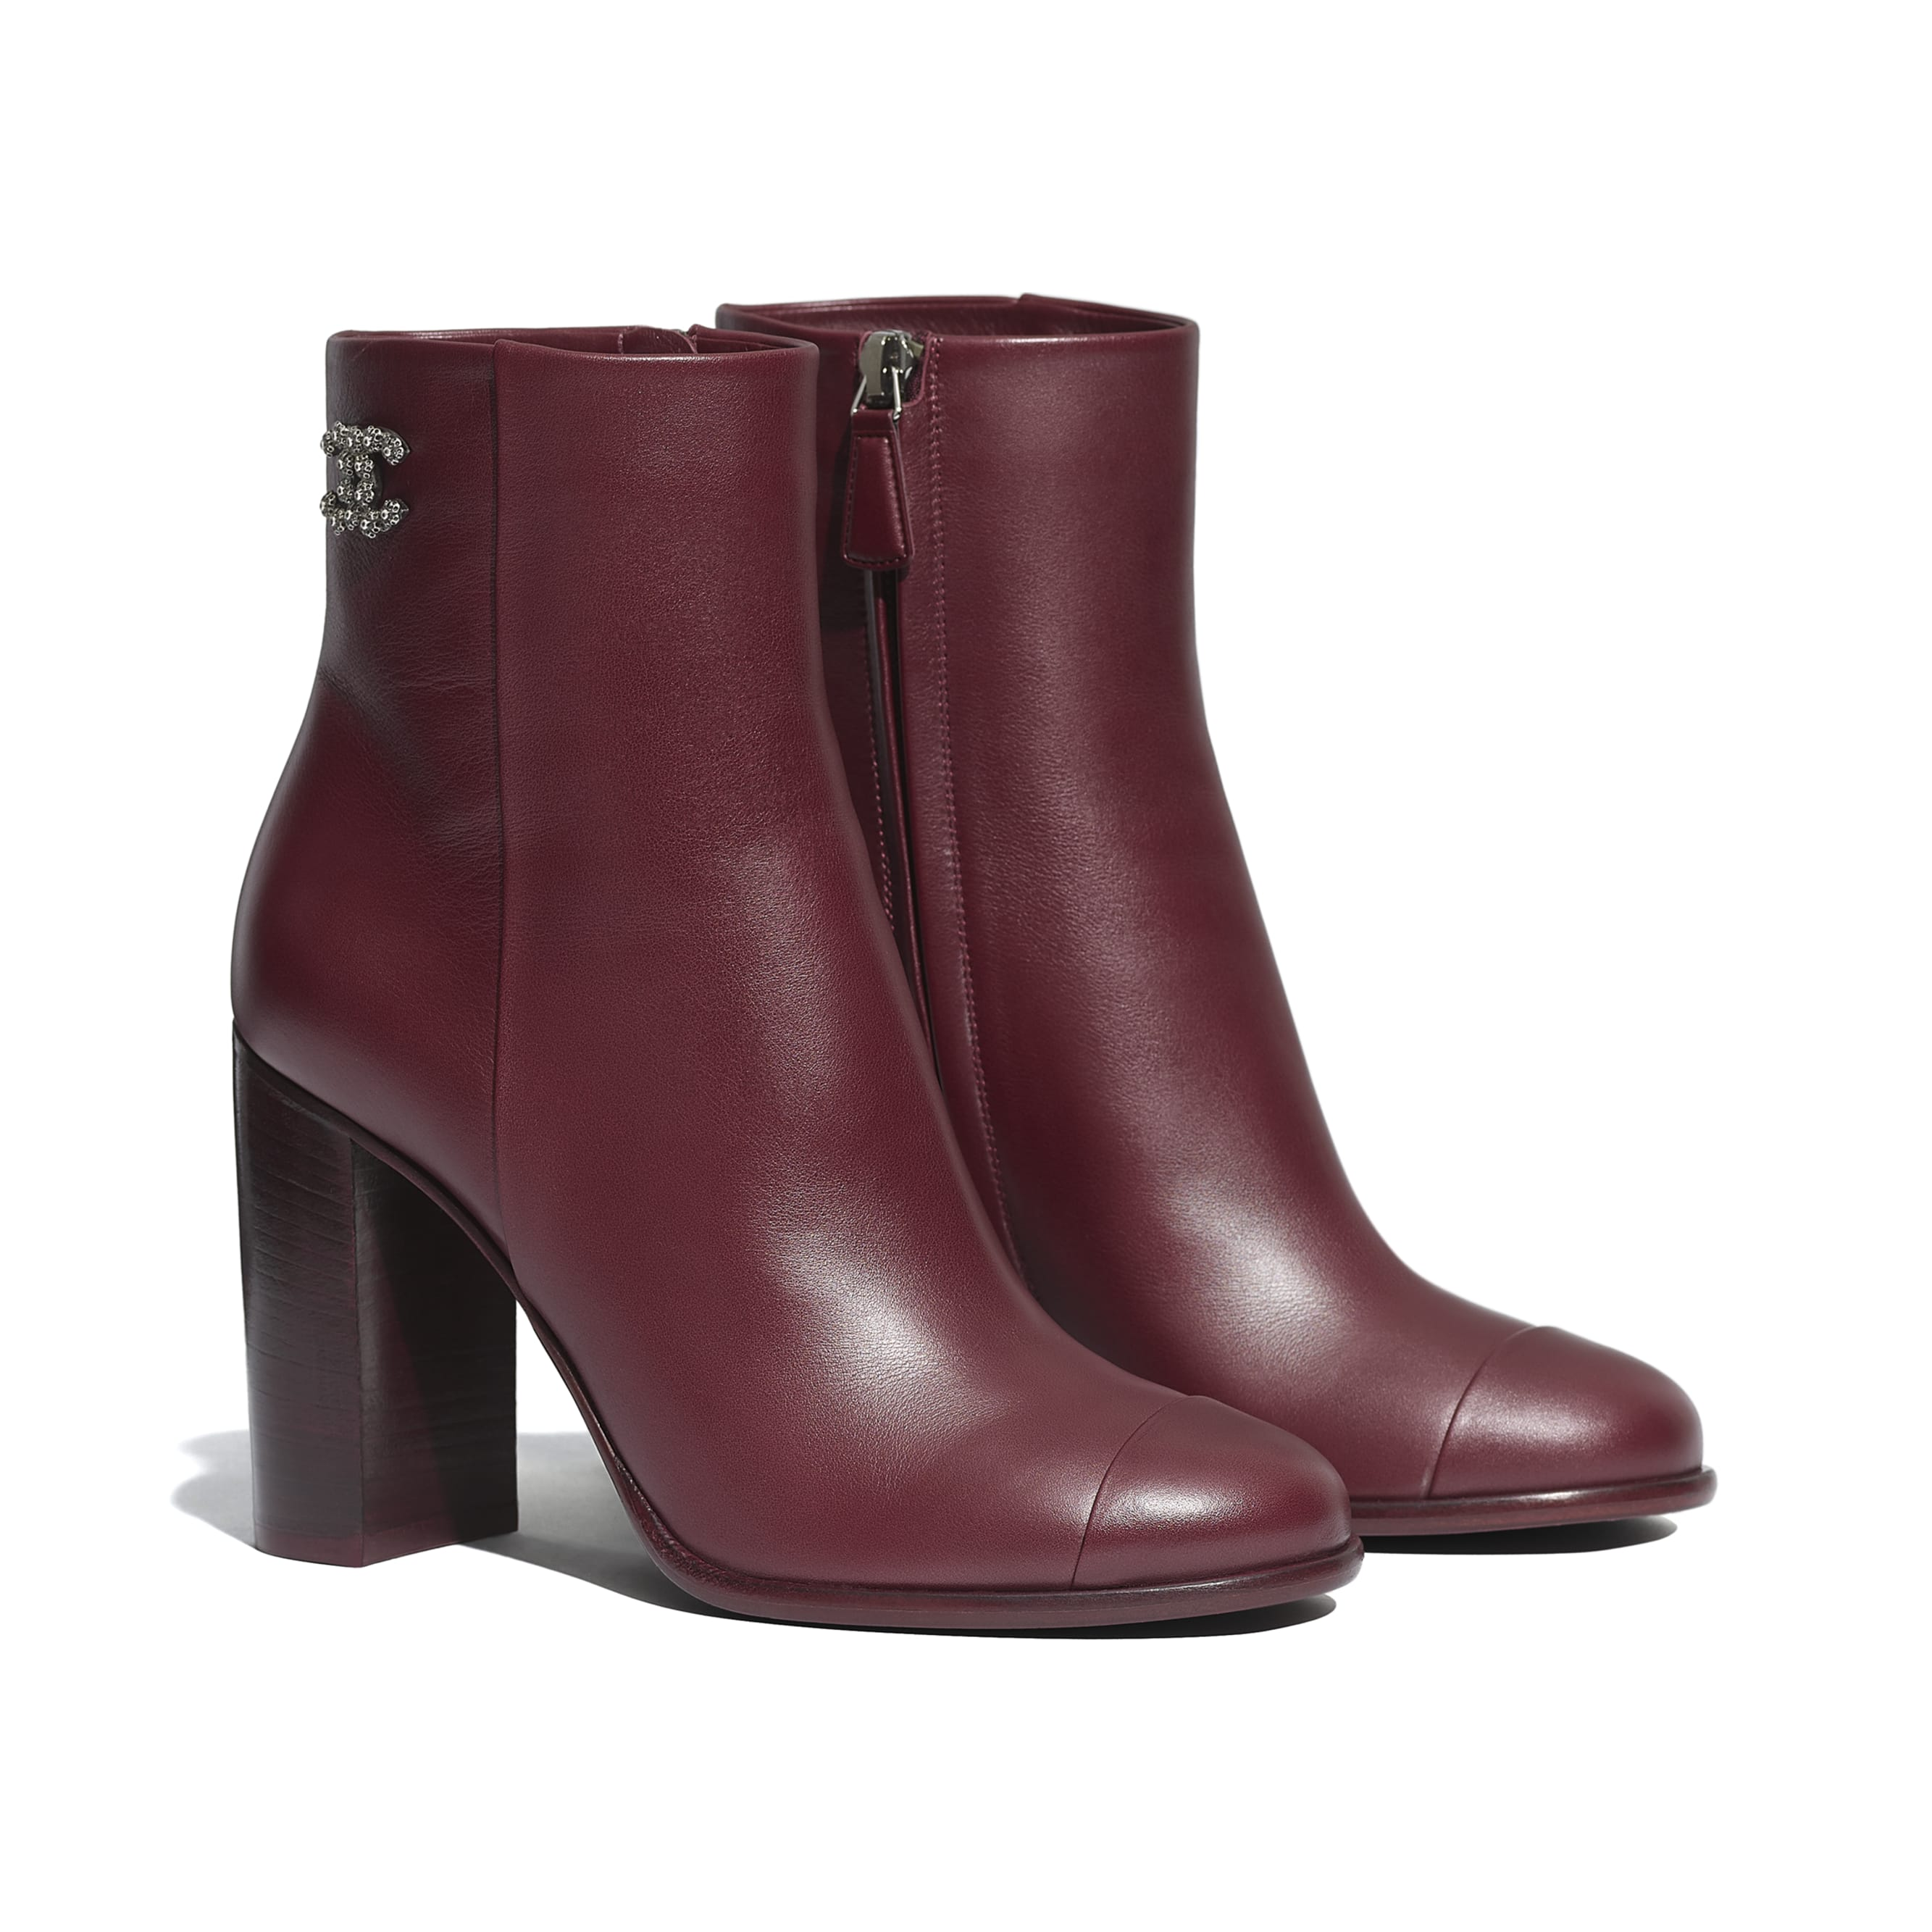 Ankle Boots - Burgundy - Calfskin - CHANEL - Alternative view - see standard sized version